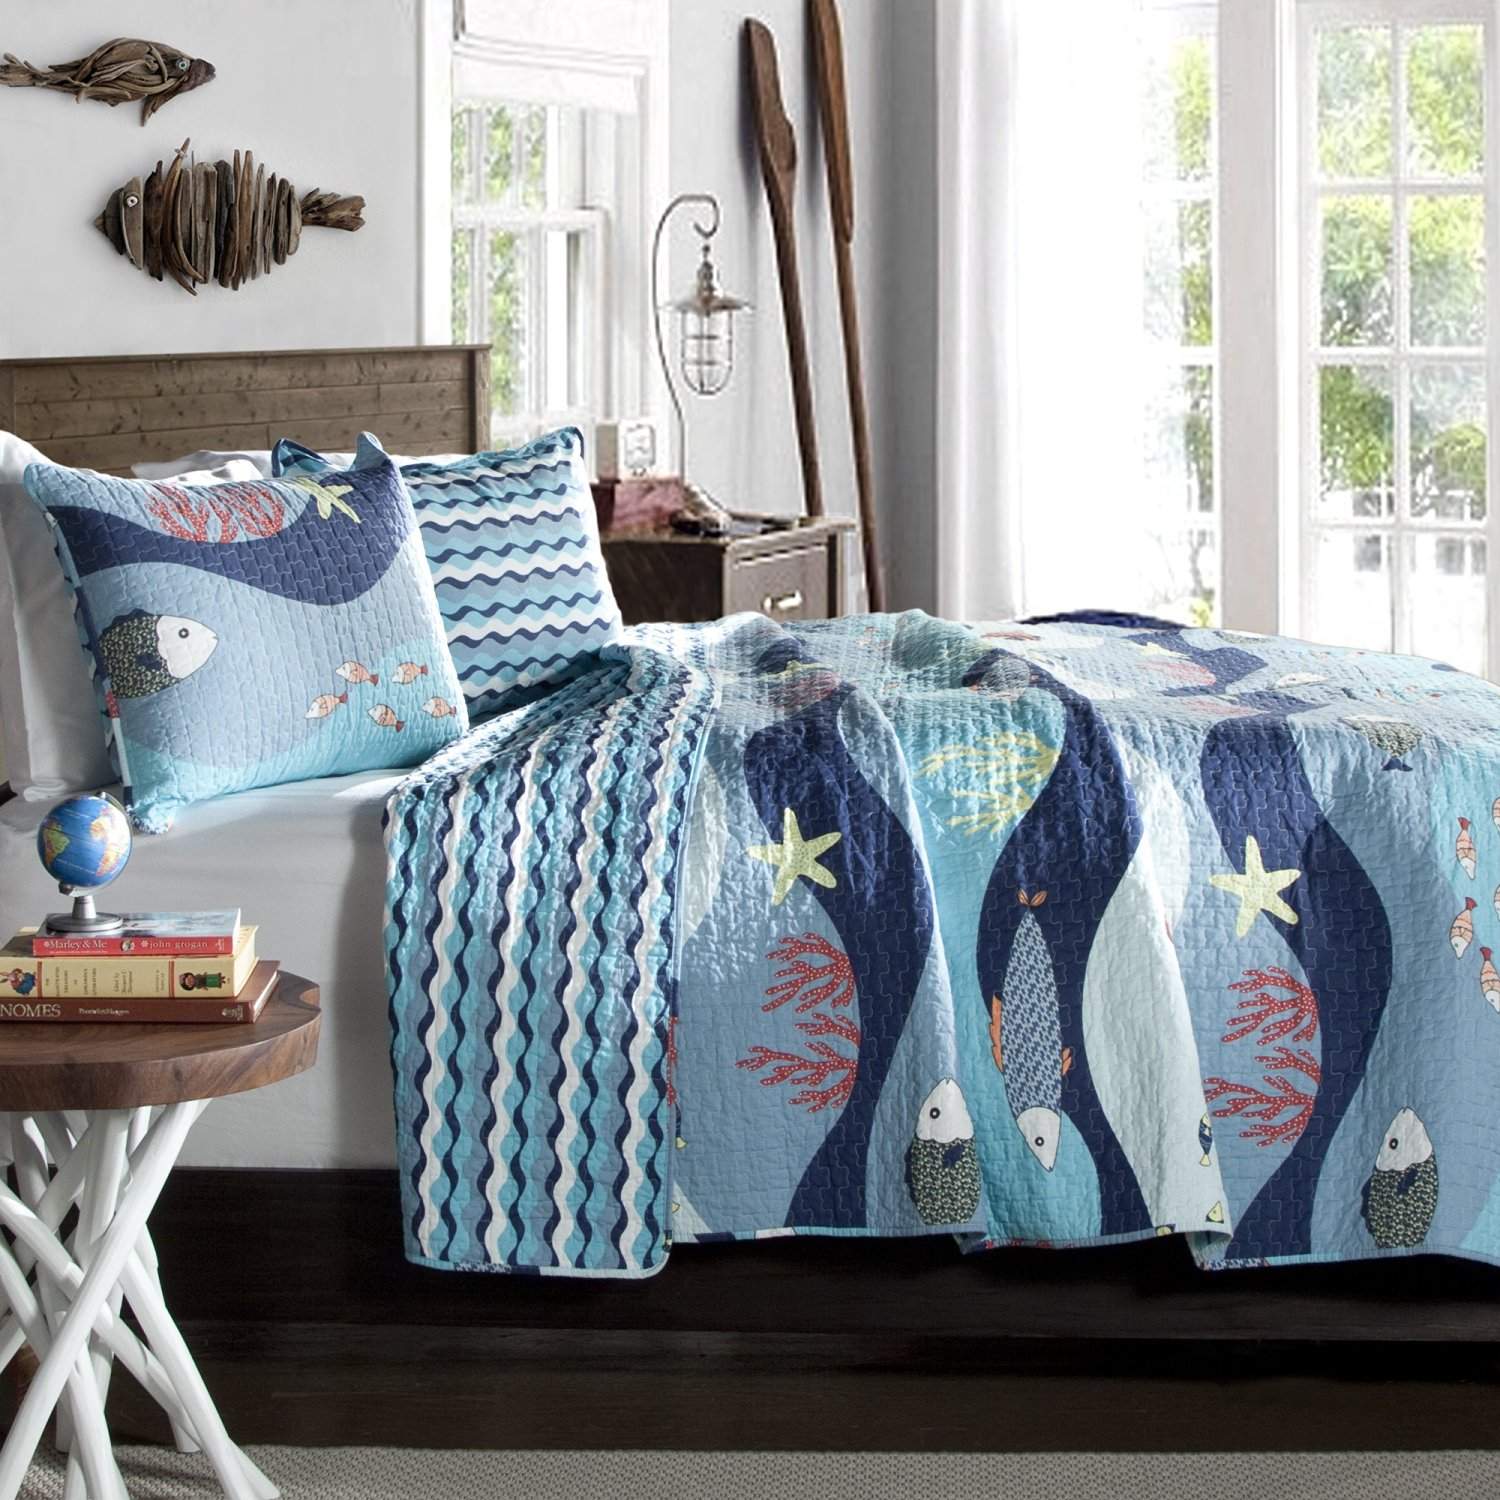 3 Piece Soft Bedspreads Coverlet Set with Blue Ocean Design, 100% Cotton, Full / Queen Size, Ocean Themed Bedding Quilt Set, White Red Baby Teal Blue, Sea Fish, Starfish, Coral